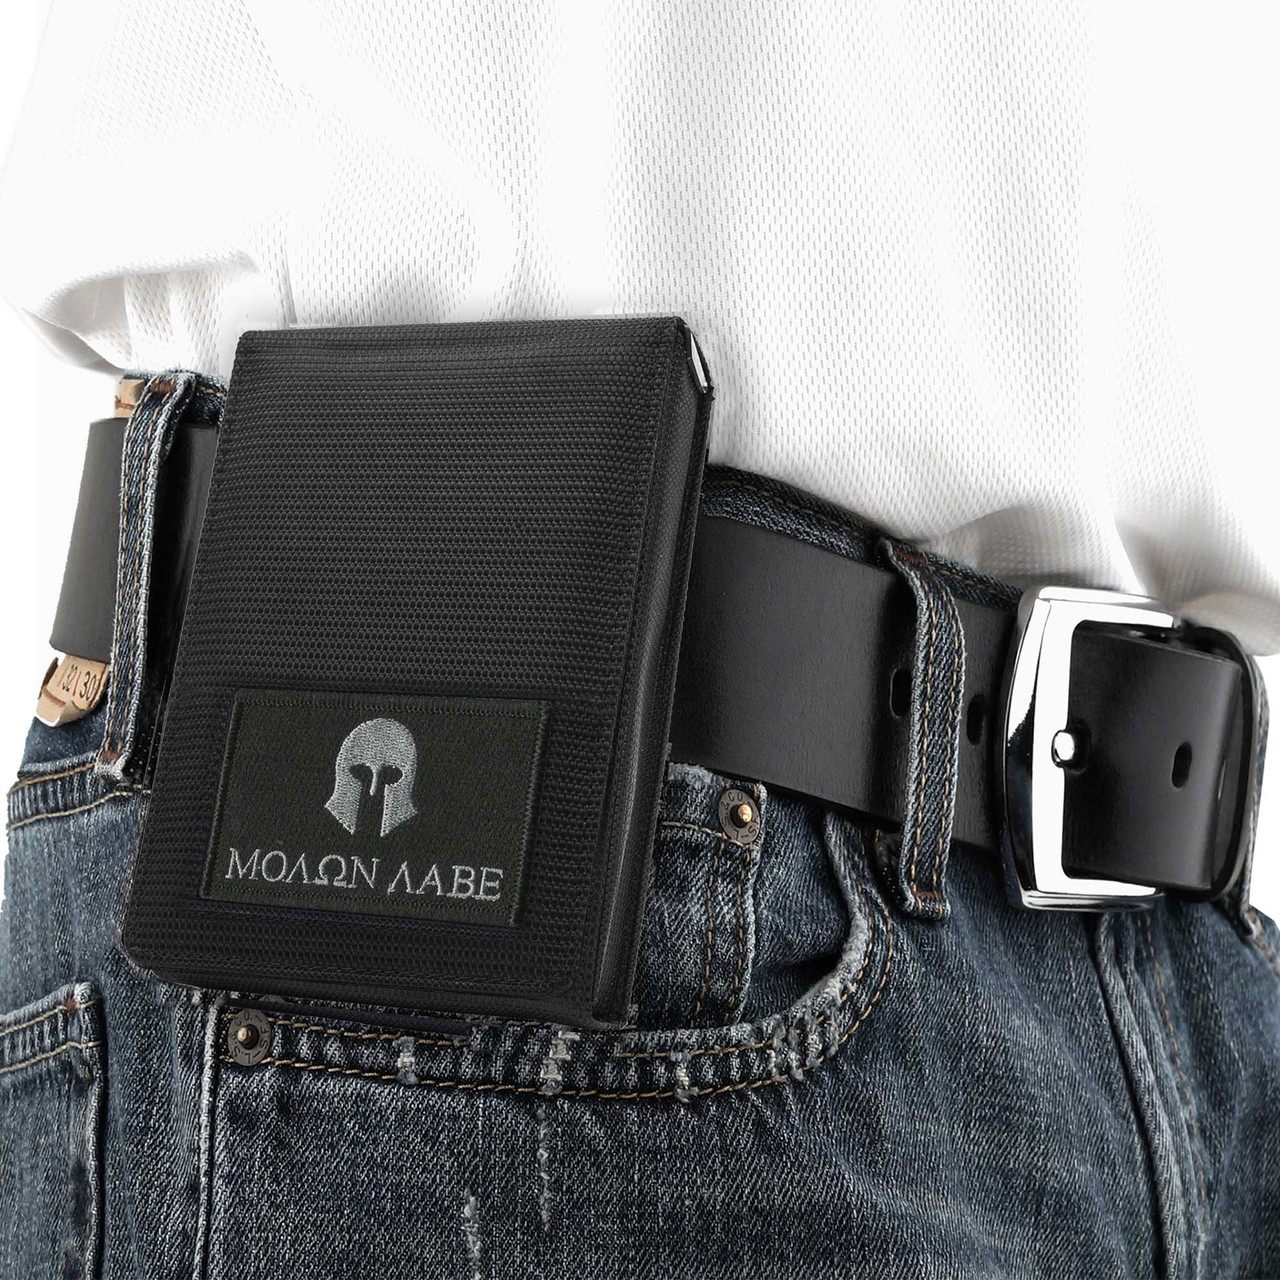 Ruger Security 9 Molon Labe Holster